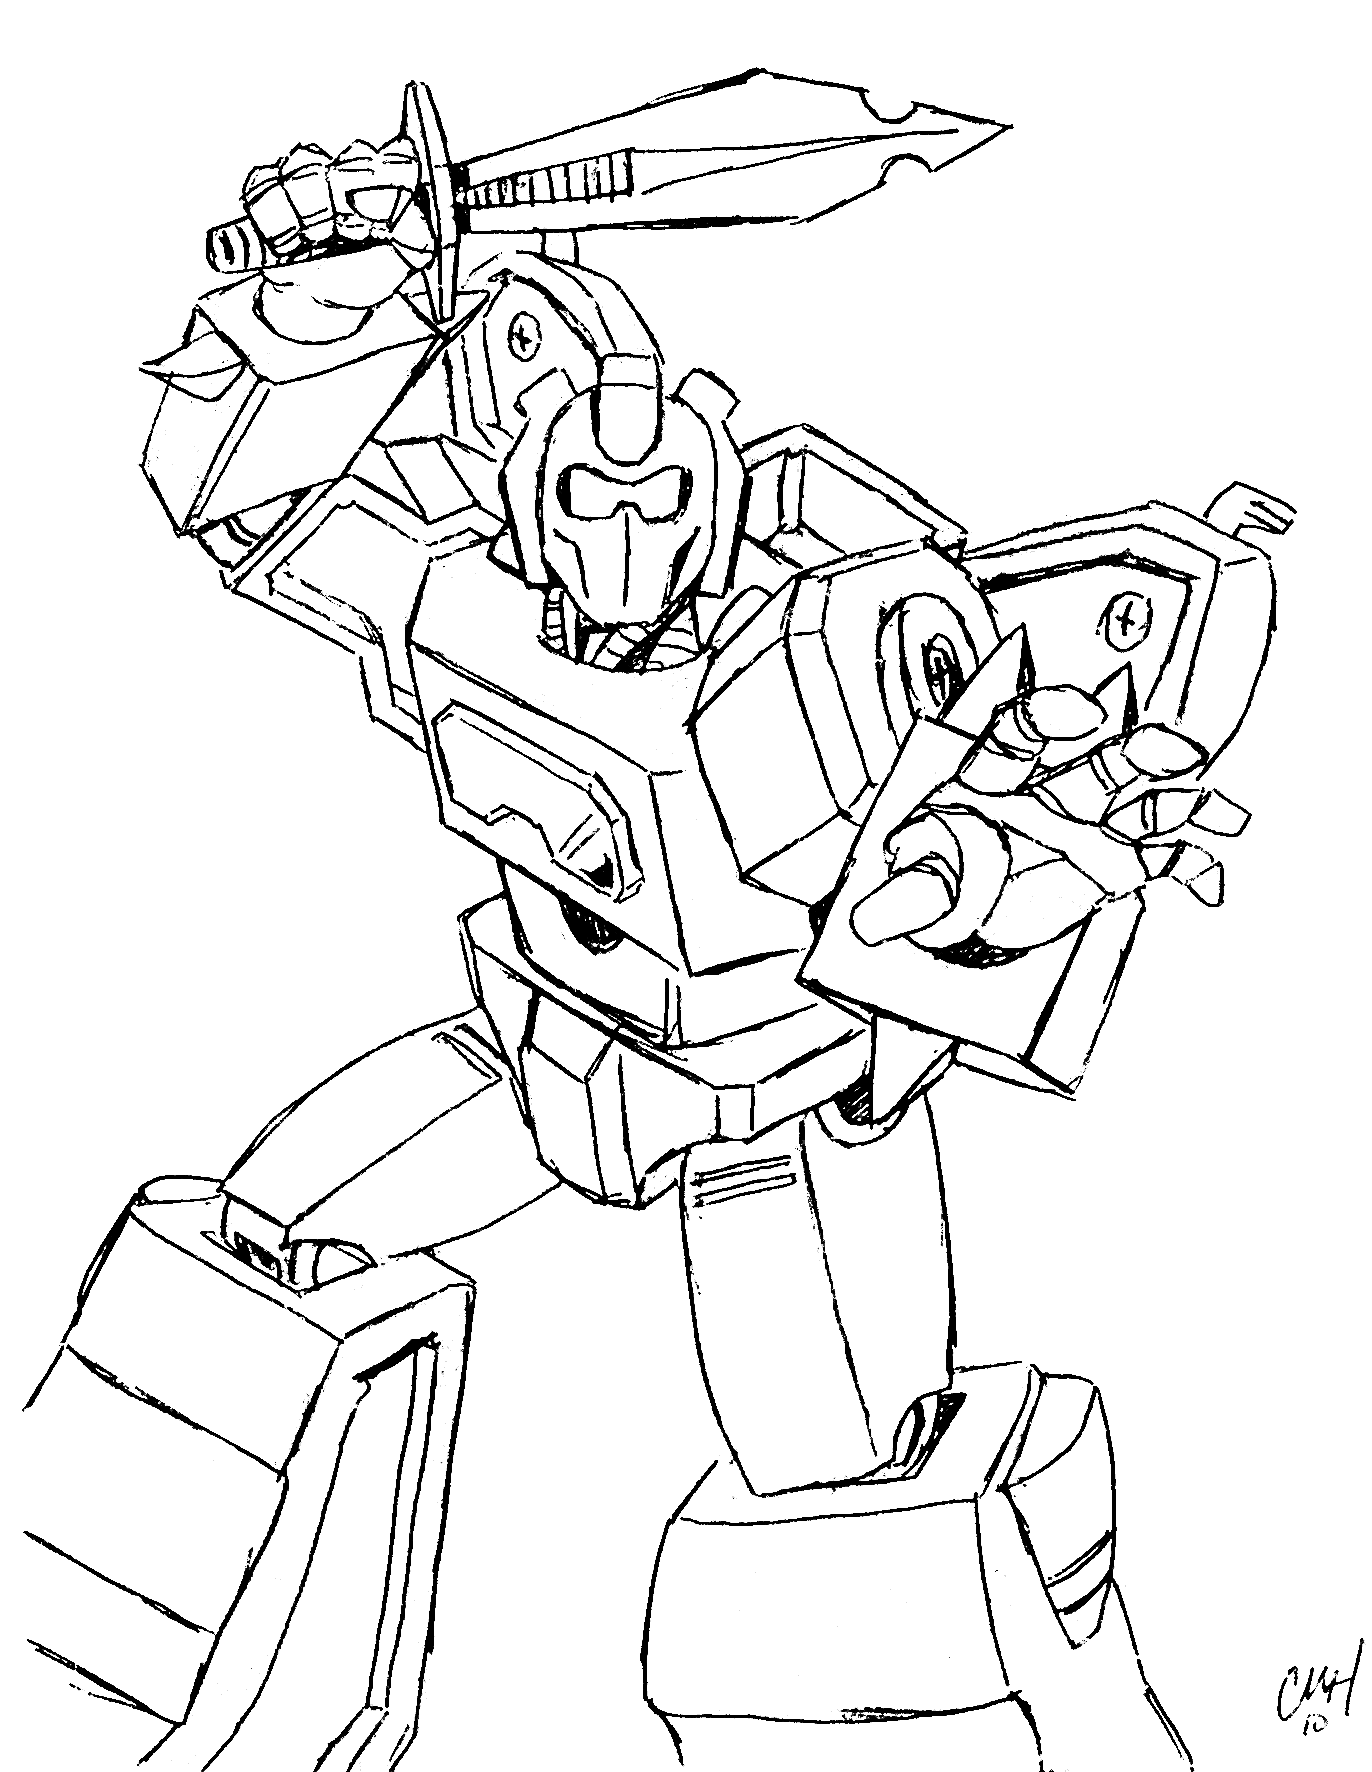 Printable Transformers Coloring Pages For Kids